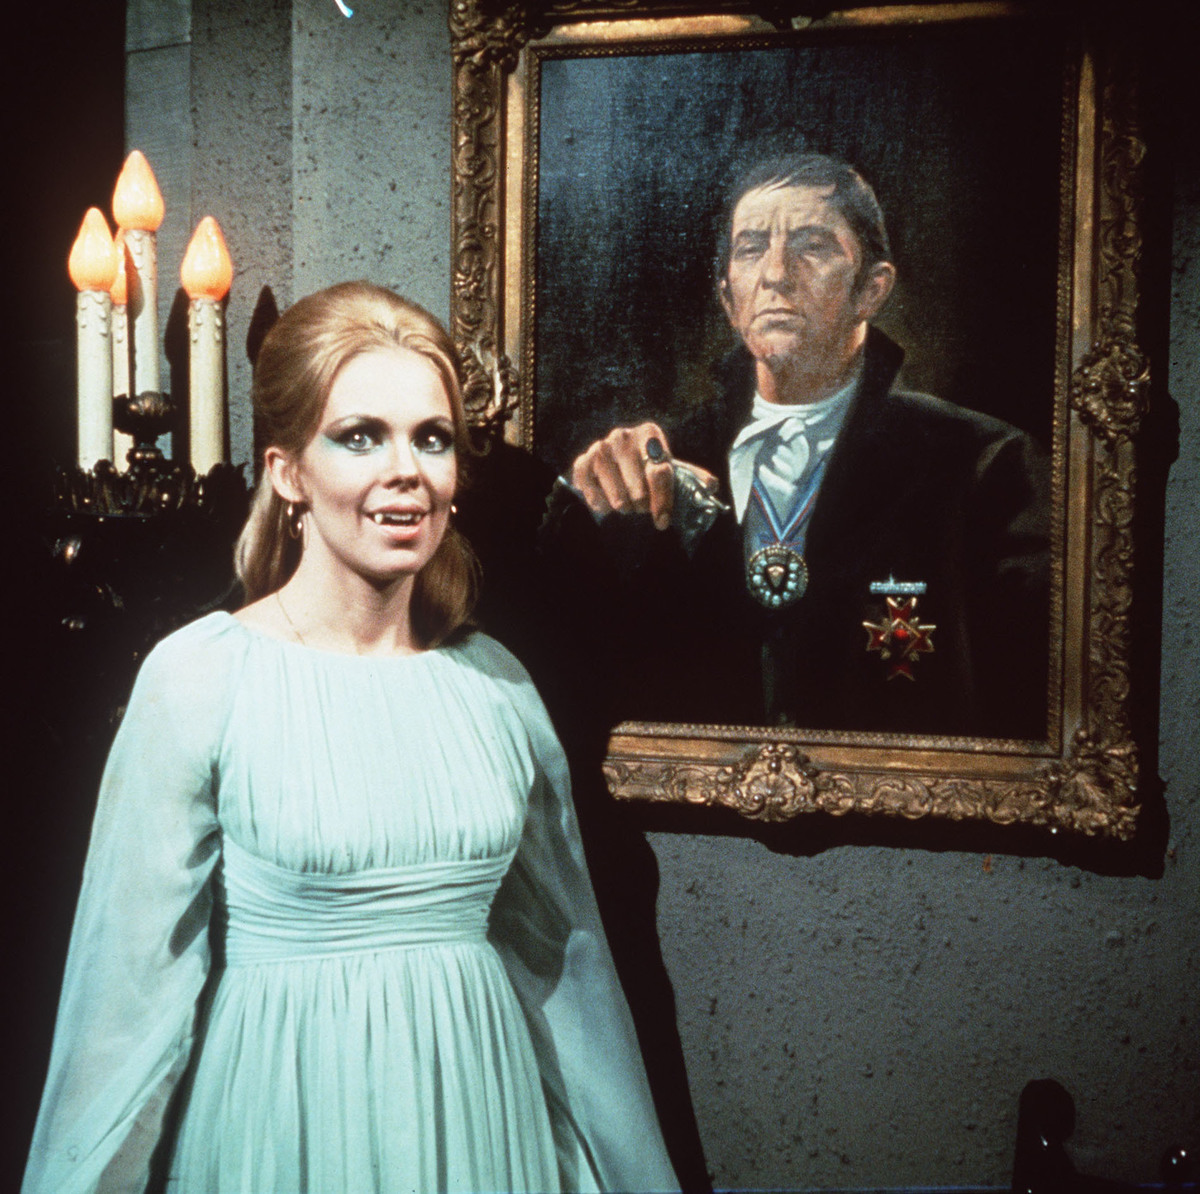 dark shadows was shot in color